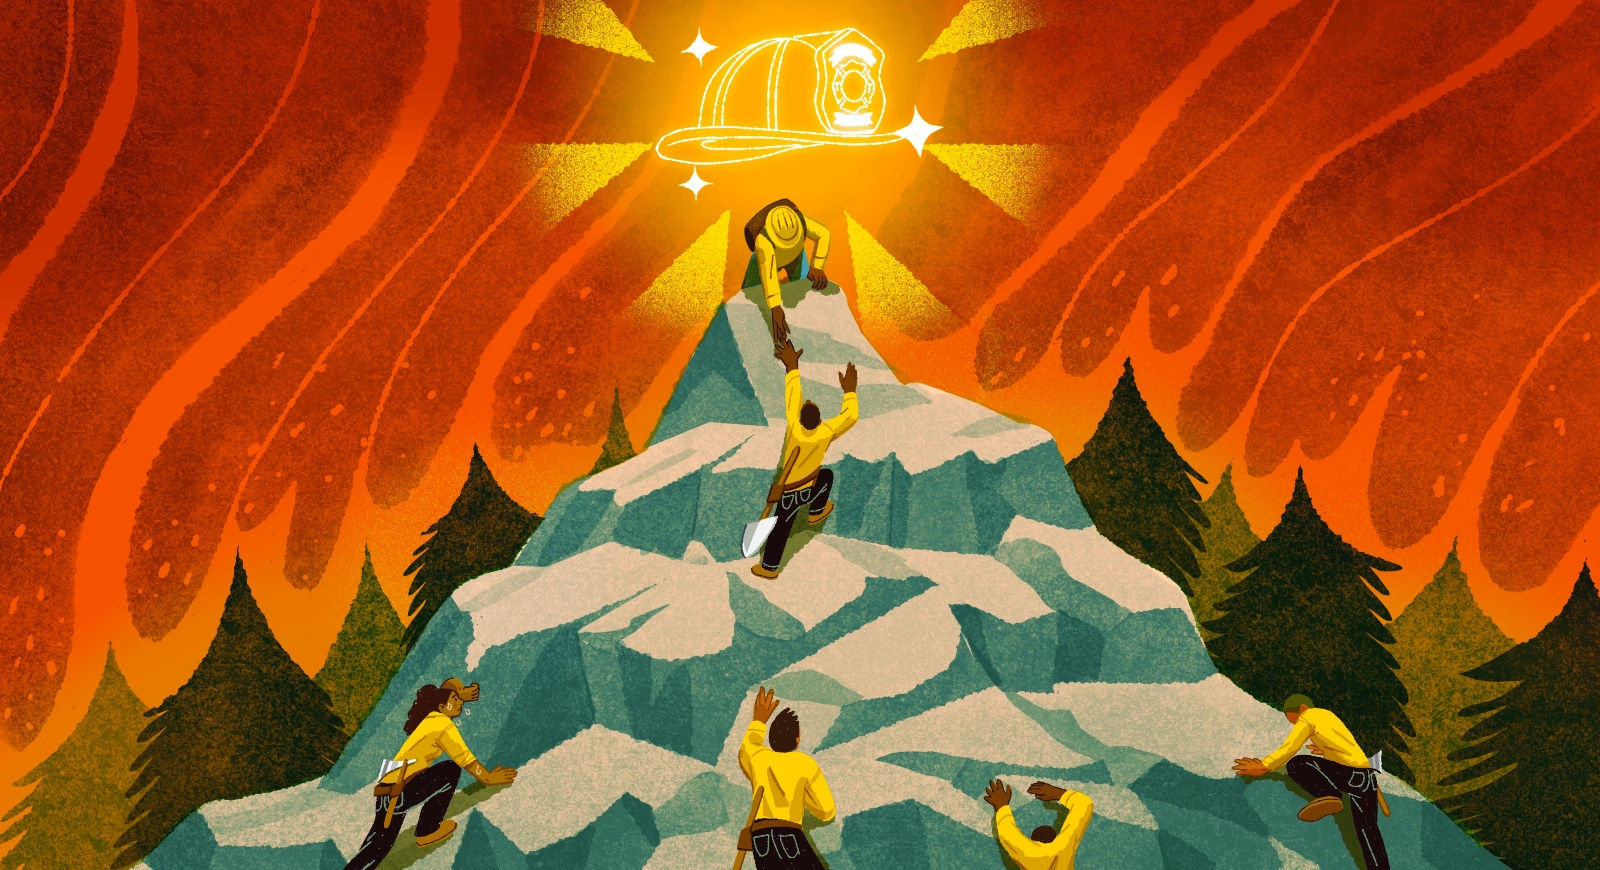 Firefighters climbing a hill illustration